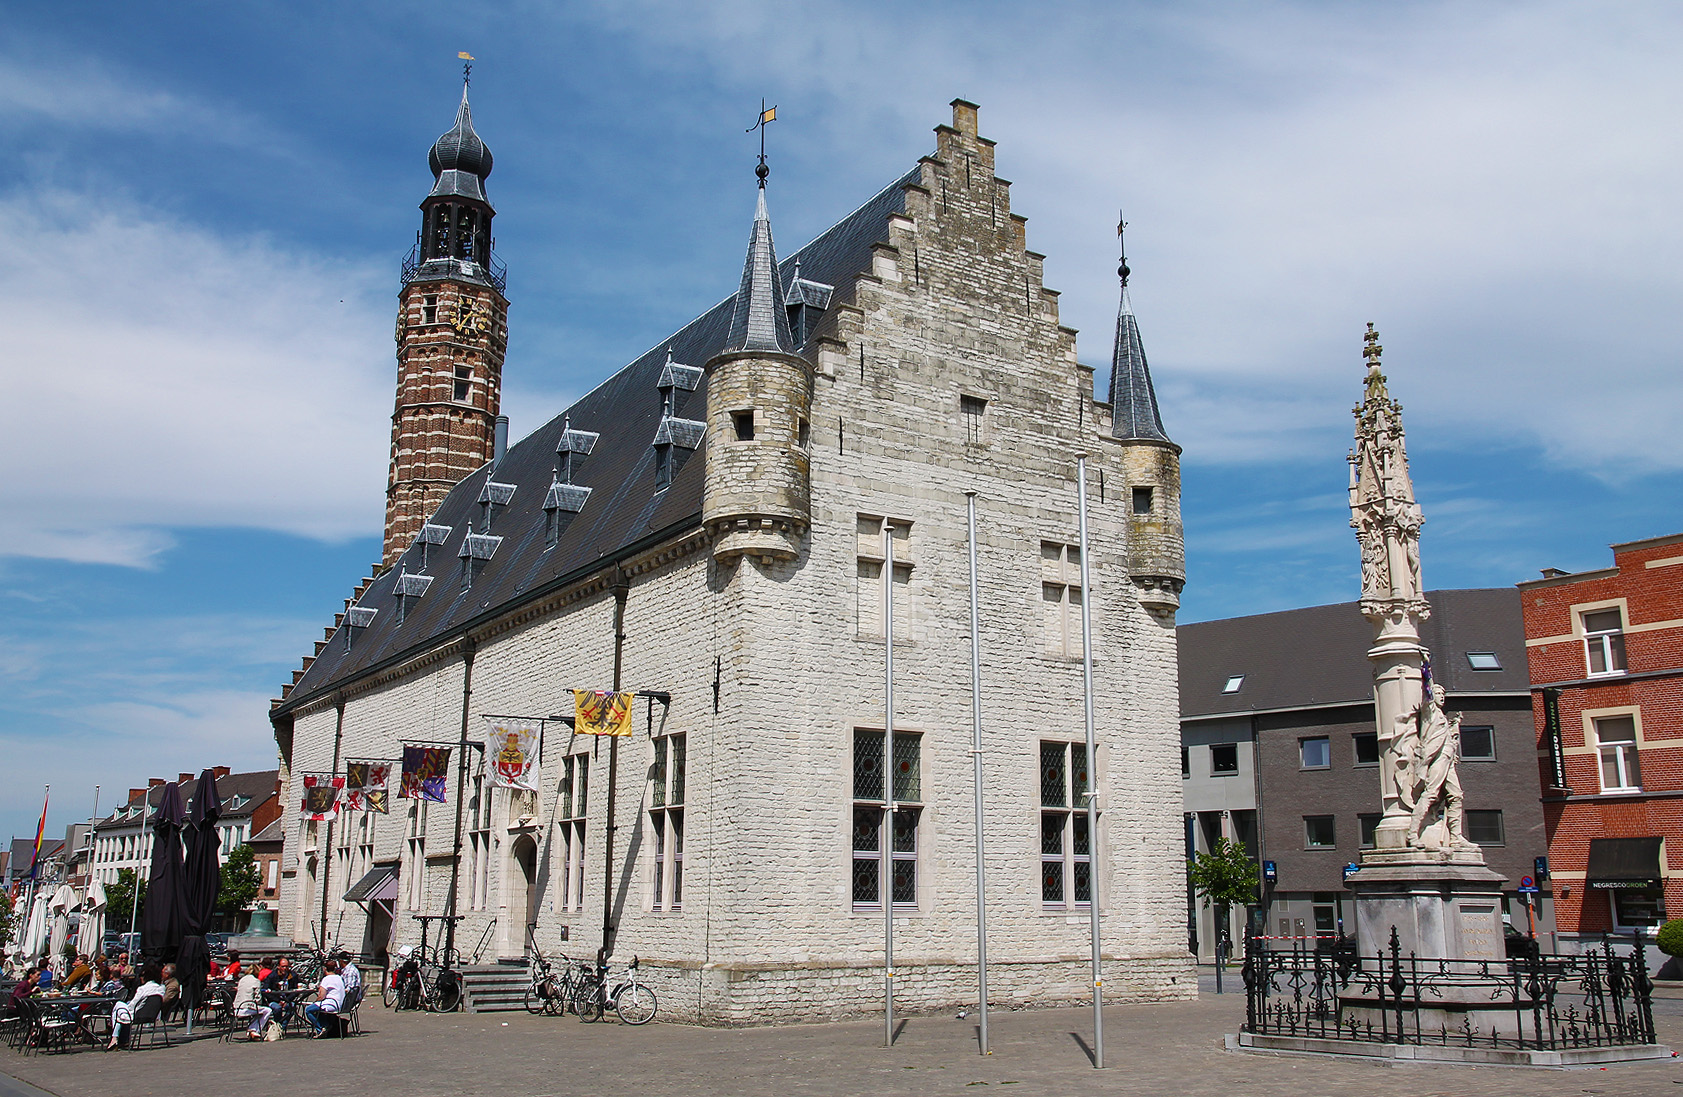 The belfry of Herentals, in the city centre.